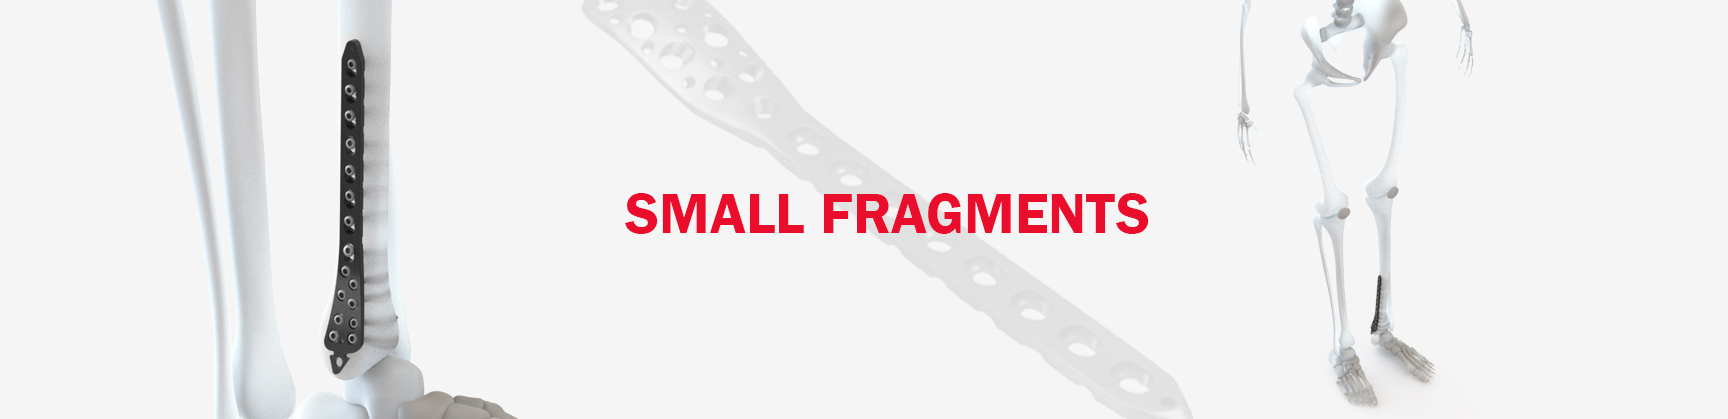 Small fragments